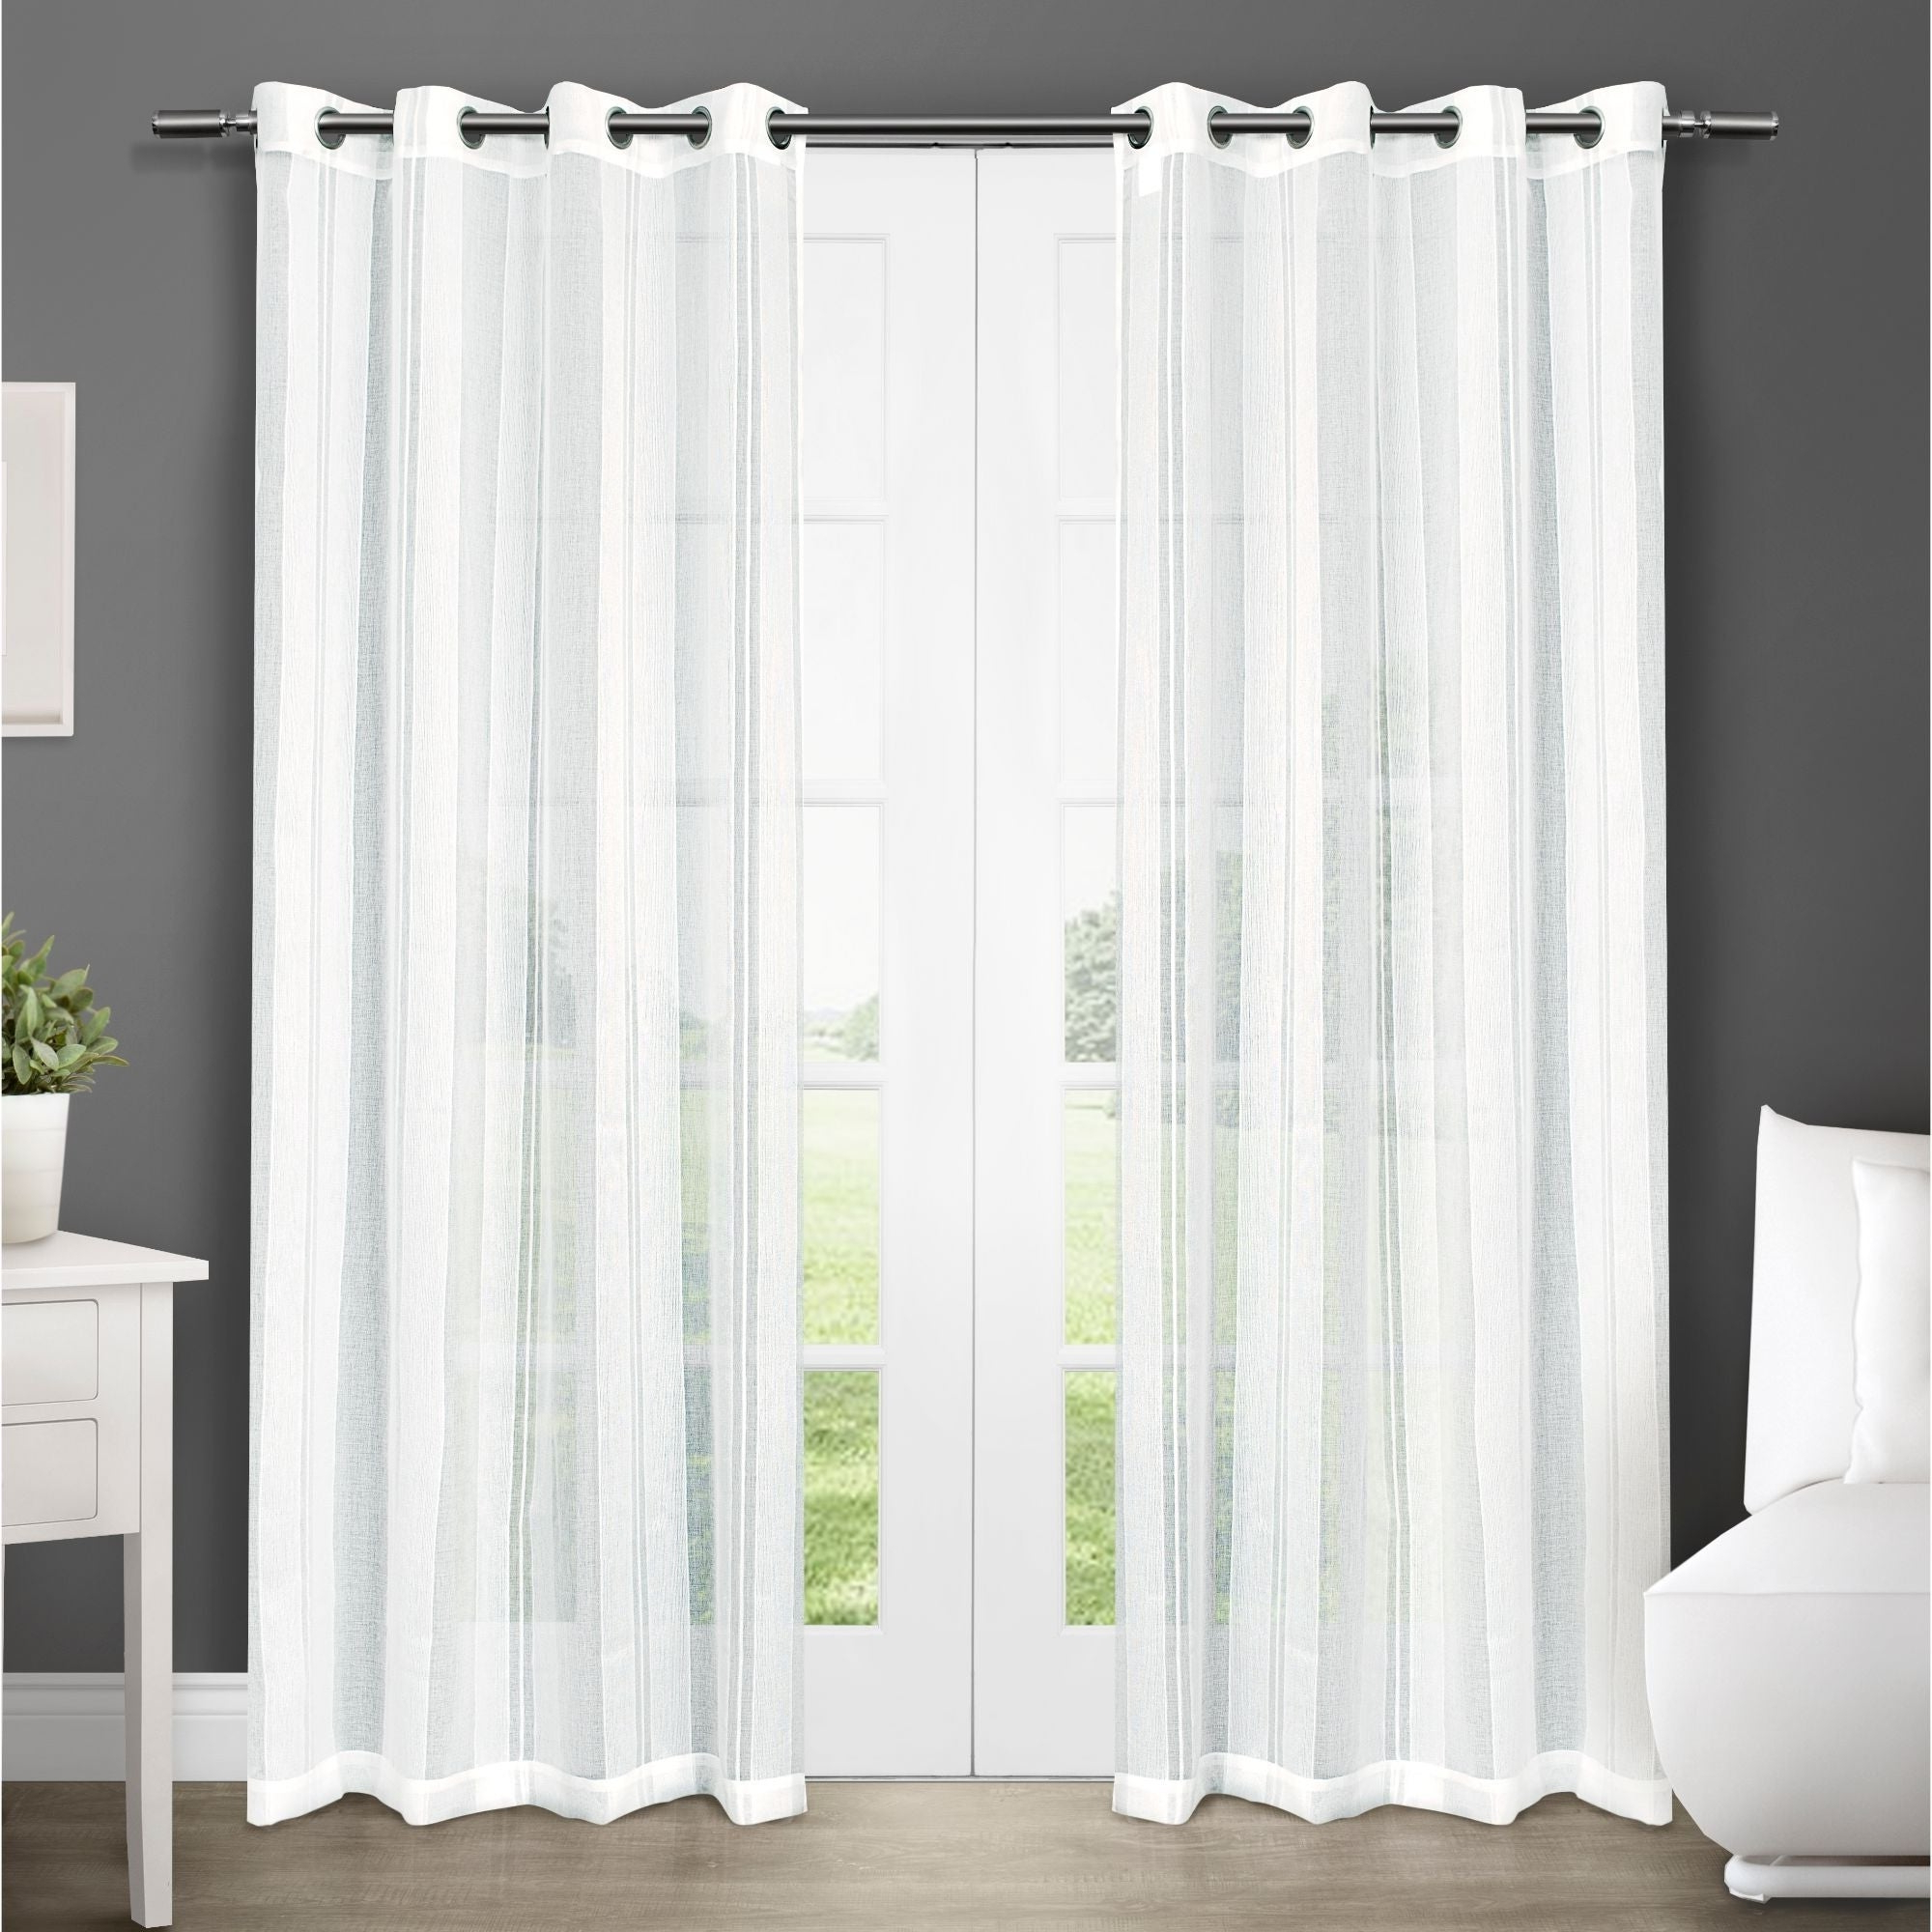 Ati Home Apollo Sheer Grommet Top Curtain Panel Pair Within Well Known Luxury Collection Cranston Sheer Curtain Panel Pairs (View 3 of 20)